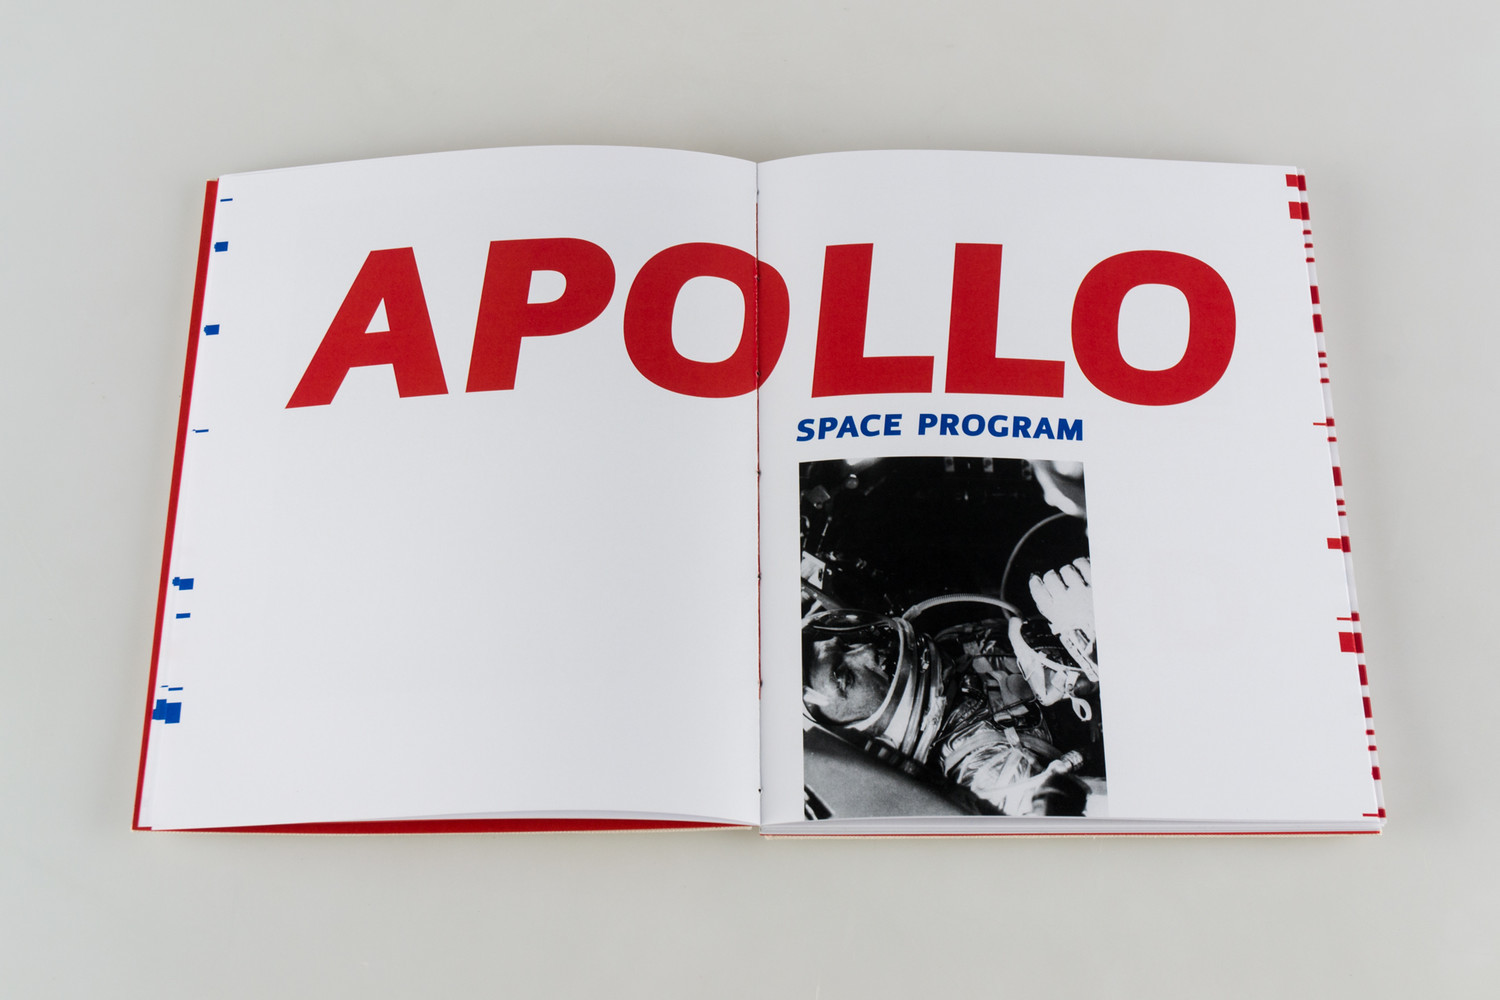 Apollo Space Program - 1 by Kelemen Richárd